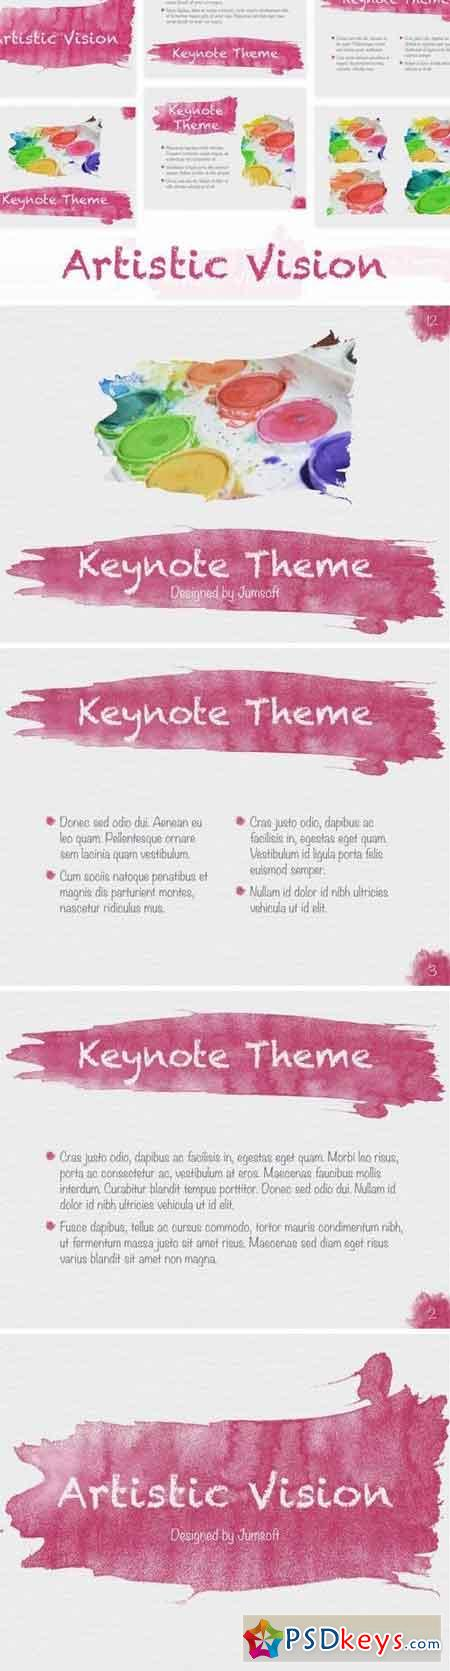 Artistic Visions Keynote template